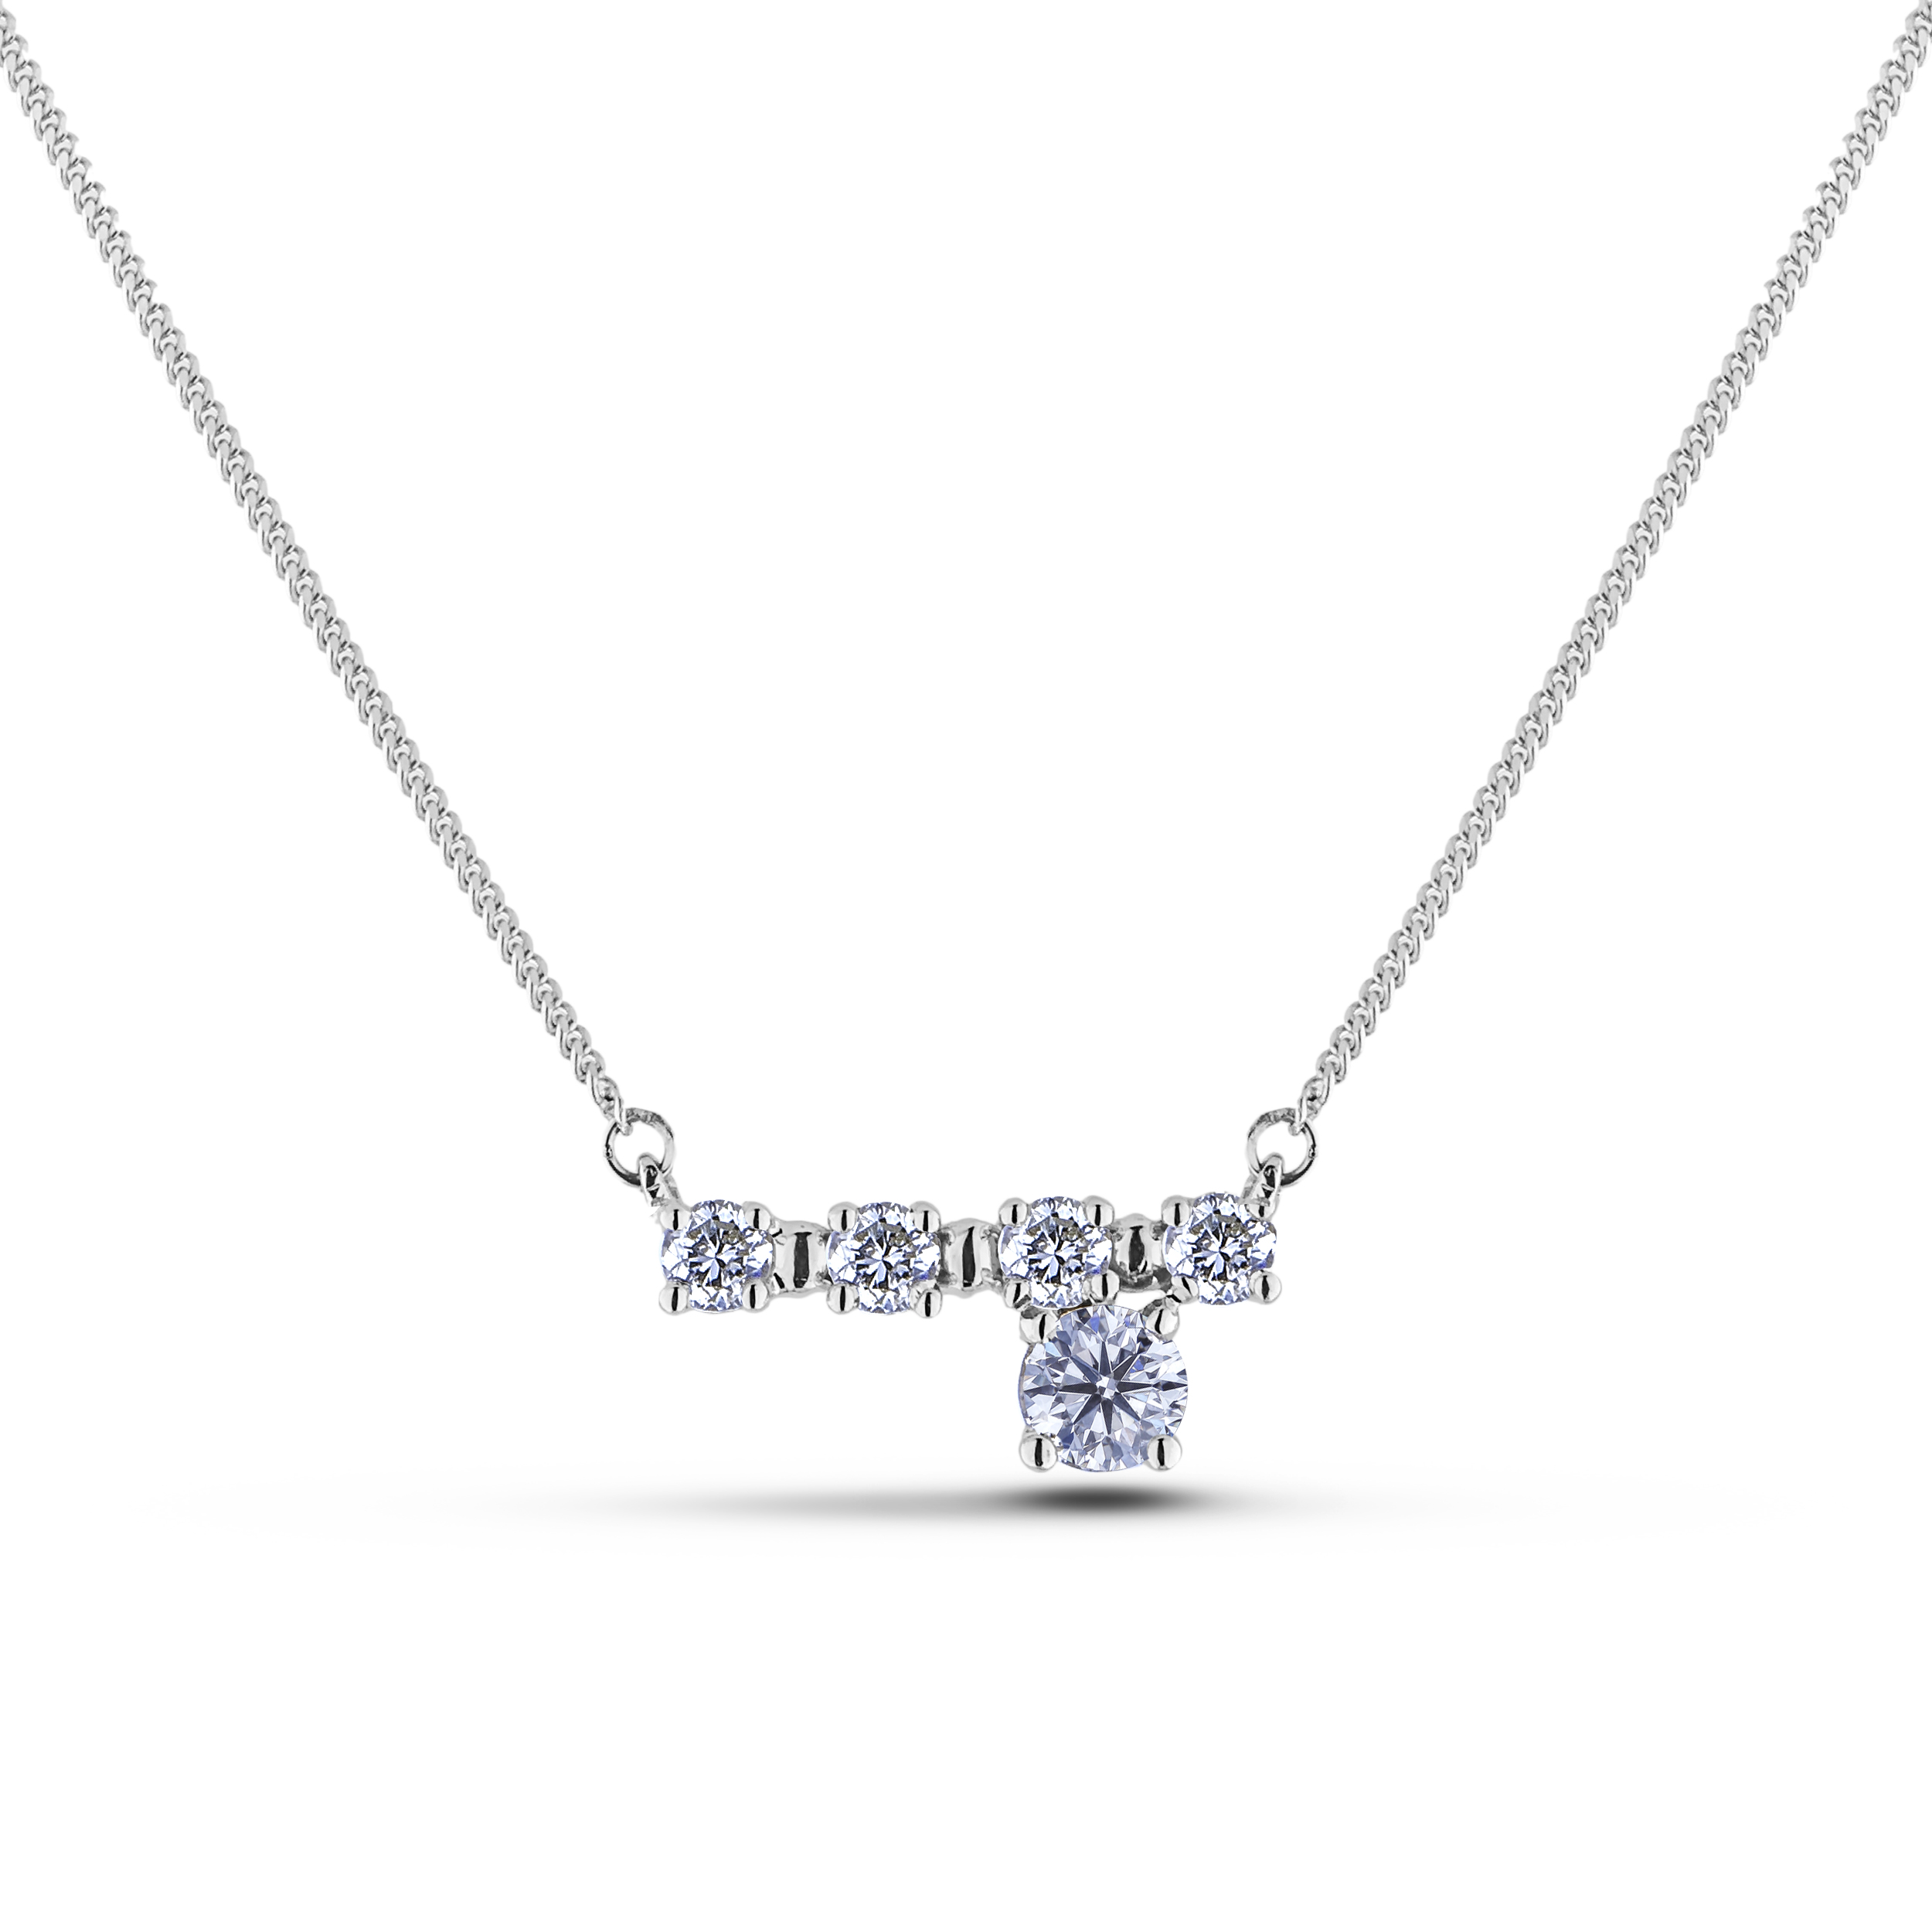 Diamond Necklaces SEC-MXND2675 (Pendants)